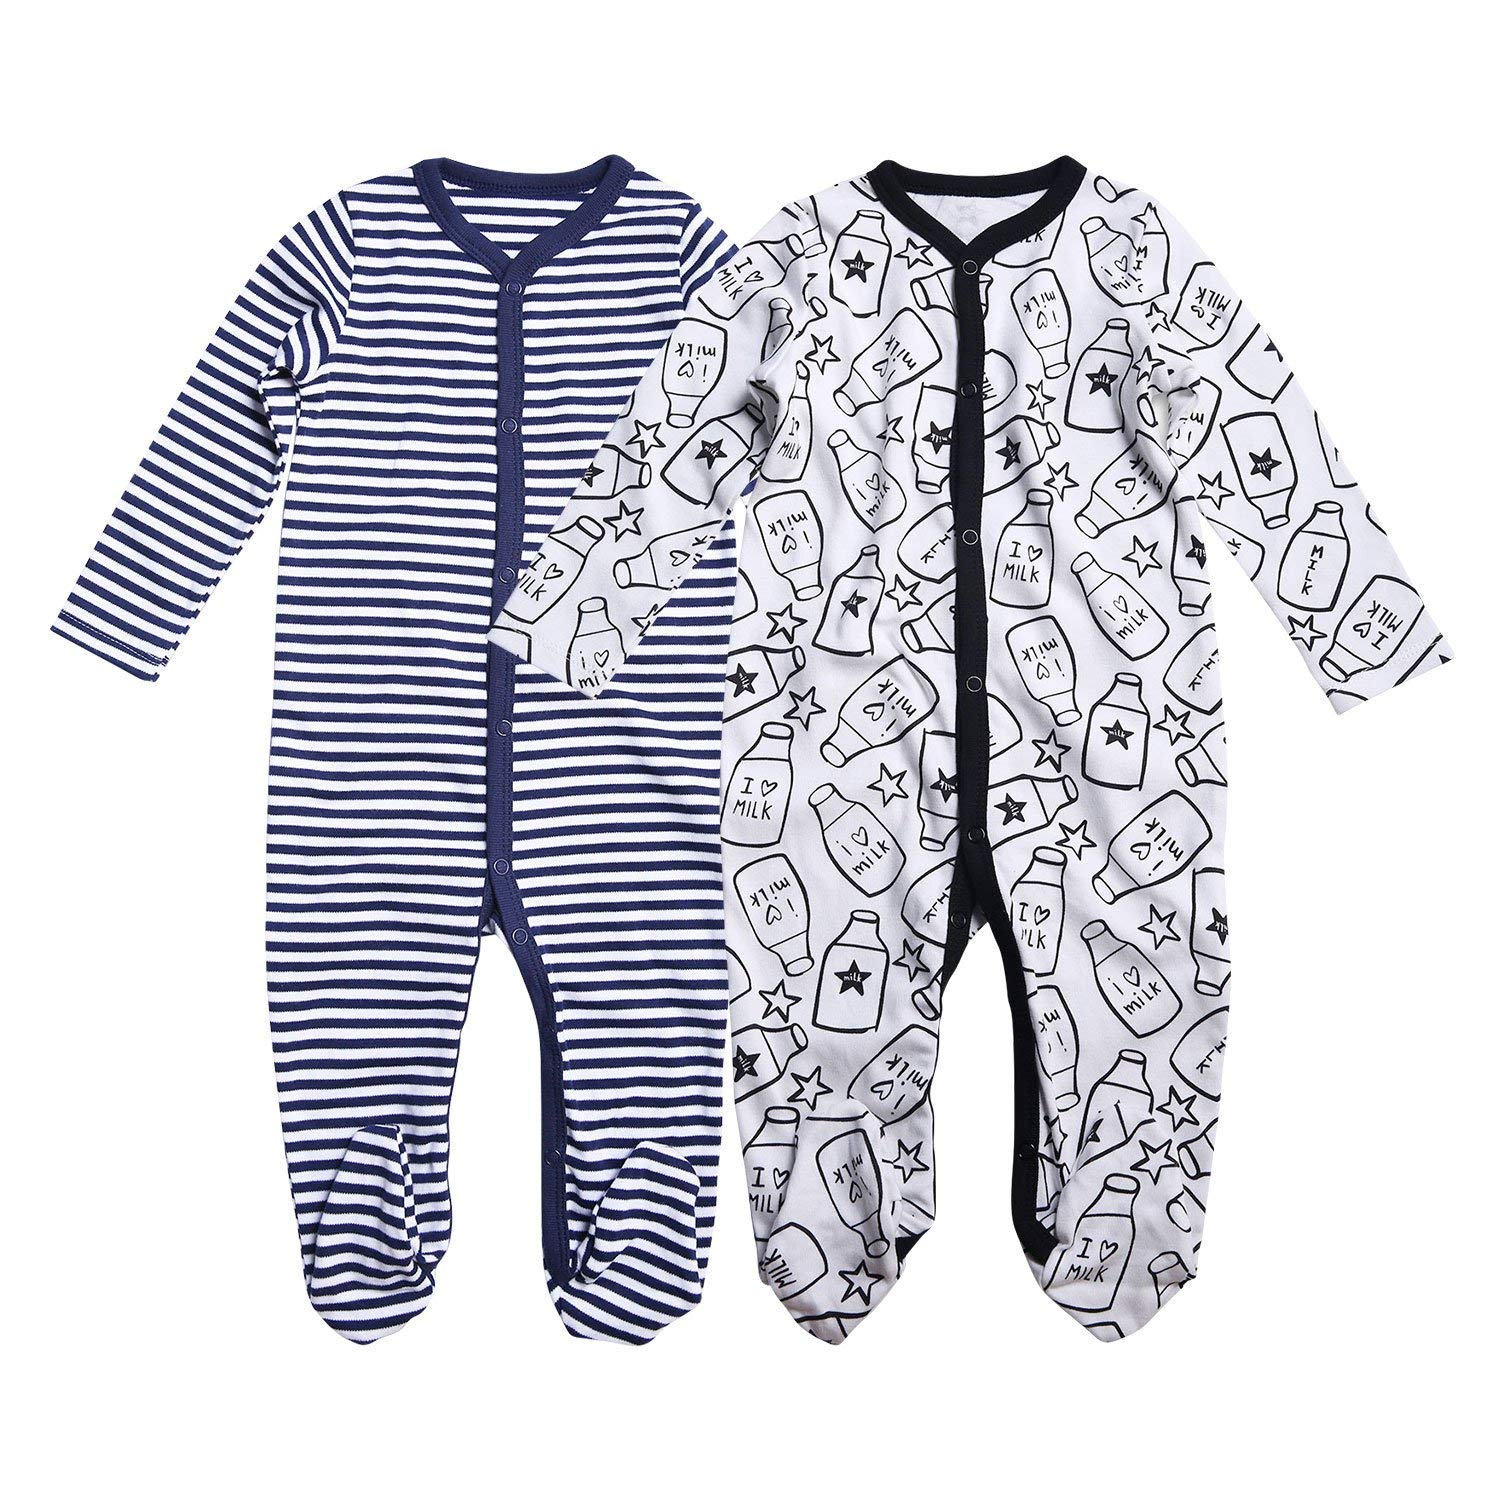 88d7658b49 Get Quotations · OPAWO Unisex-Baby Girls Boys 2-Pack Cotton Footie Pajamas  Footed Sleepers 0-